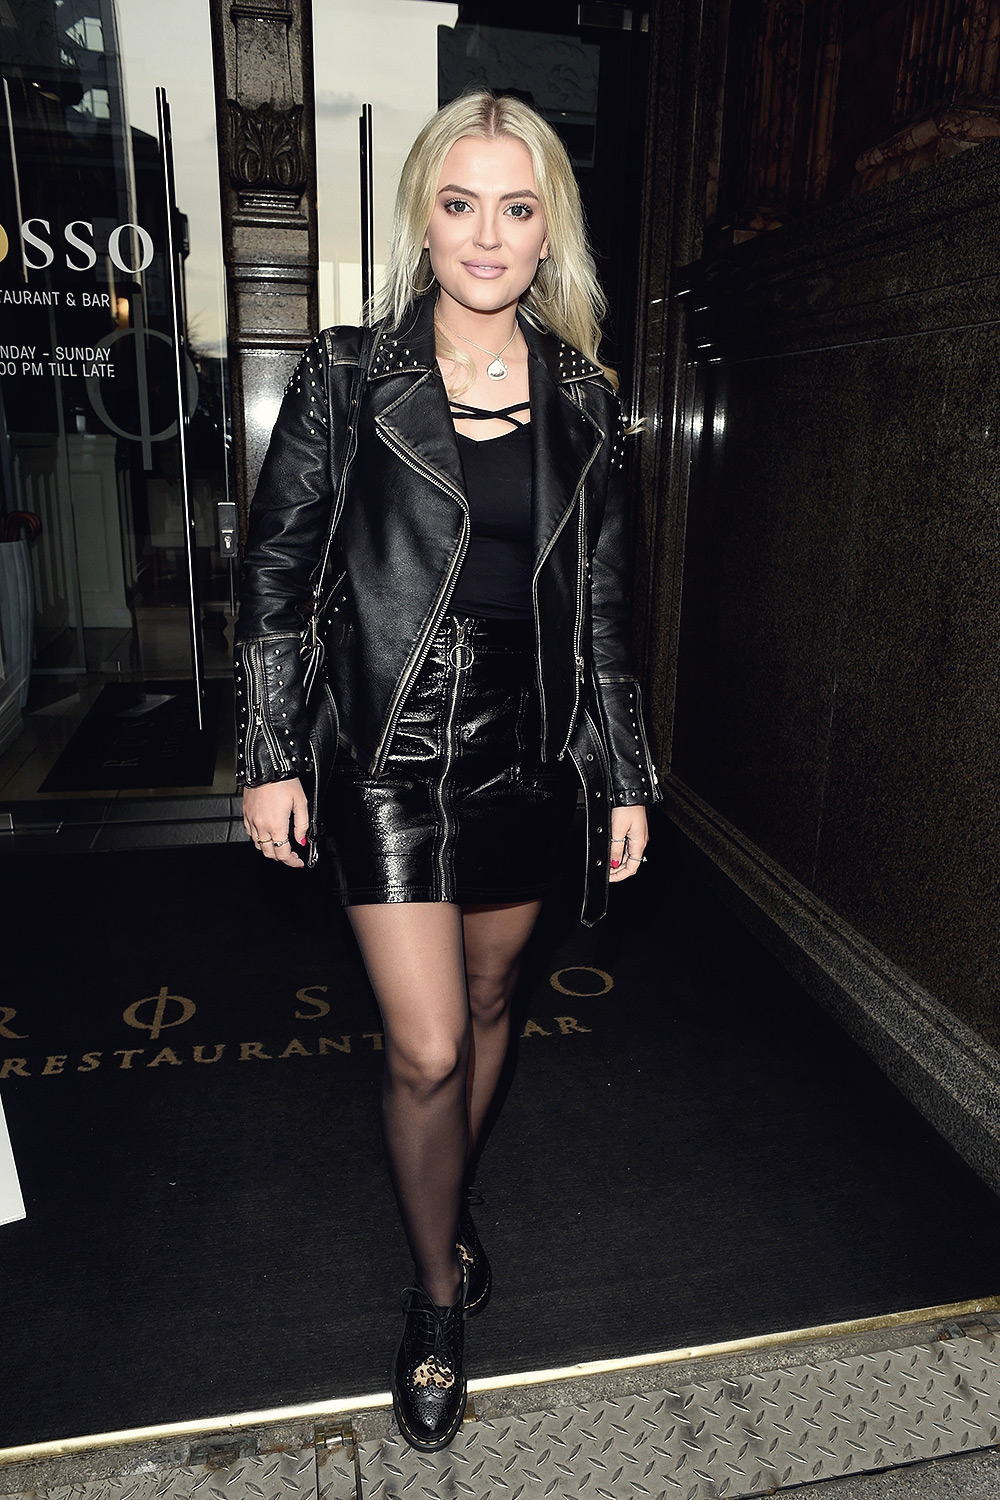 Photos Lucy Fallon naked (38 photos), Cleavage